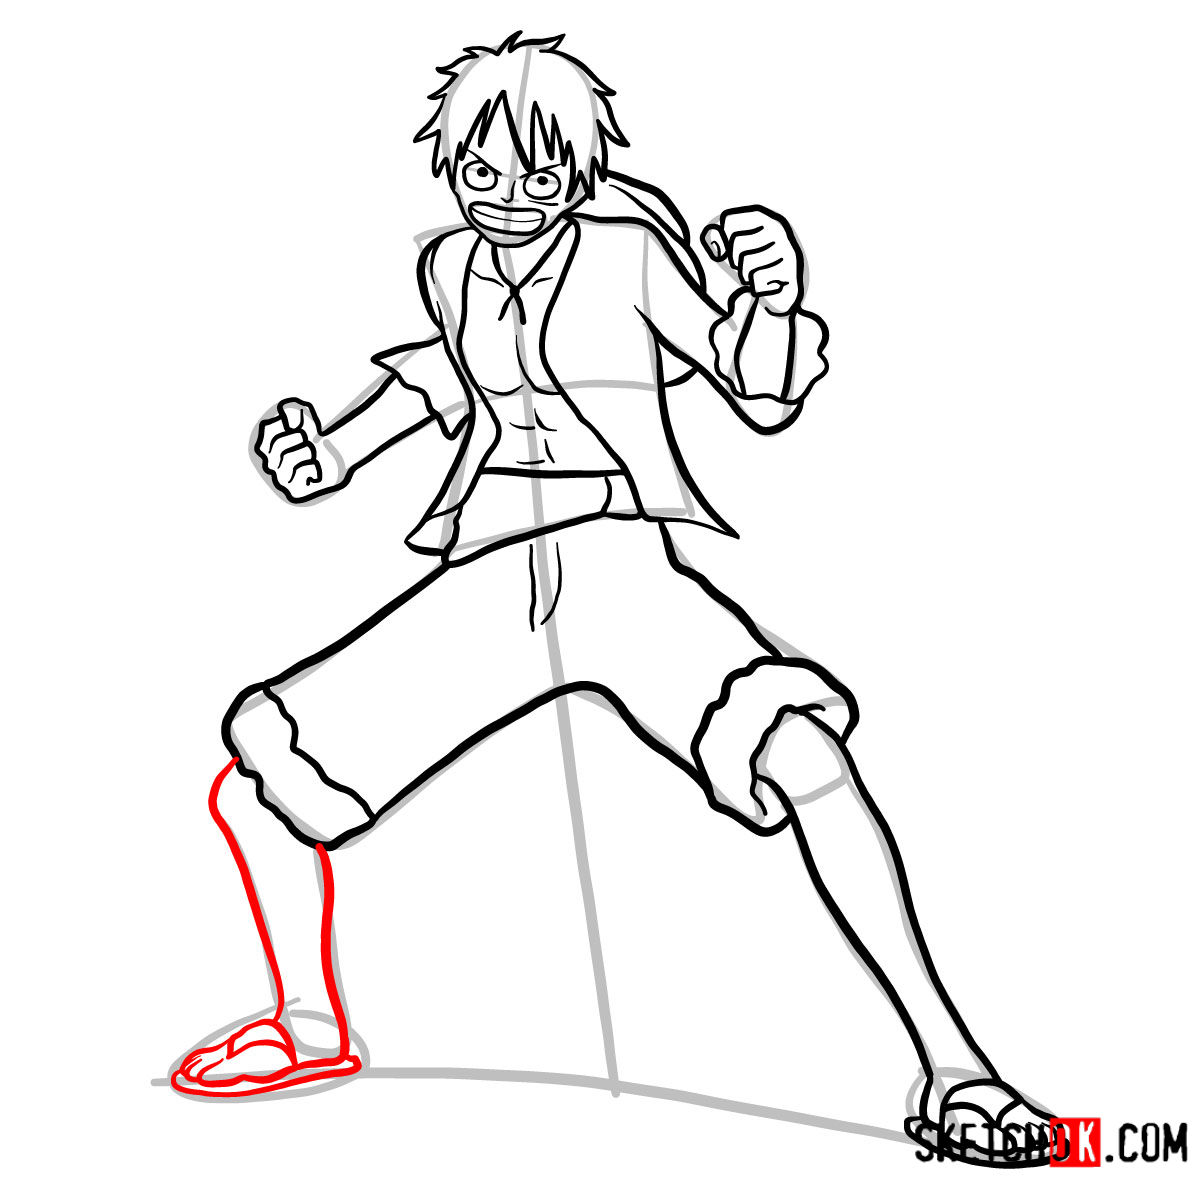 How to draw Monkey D. Luffy full growth   One Piece - step 12